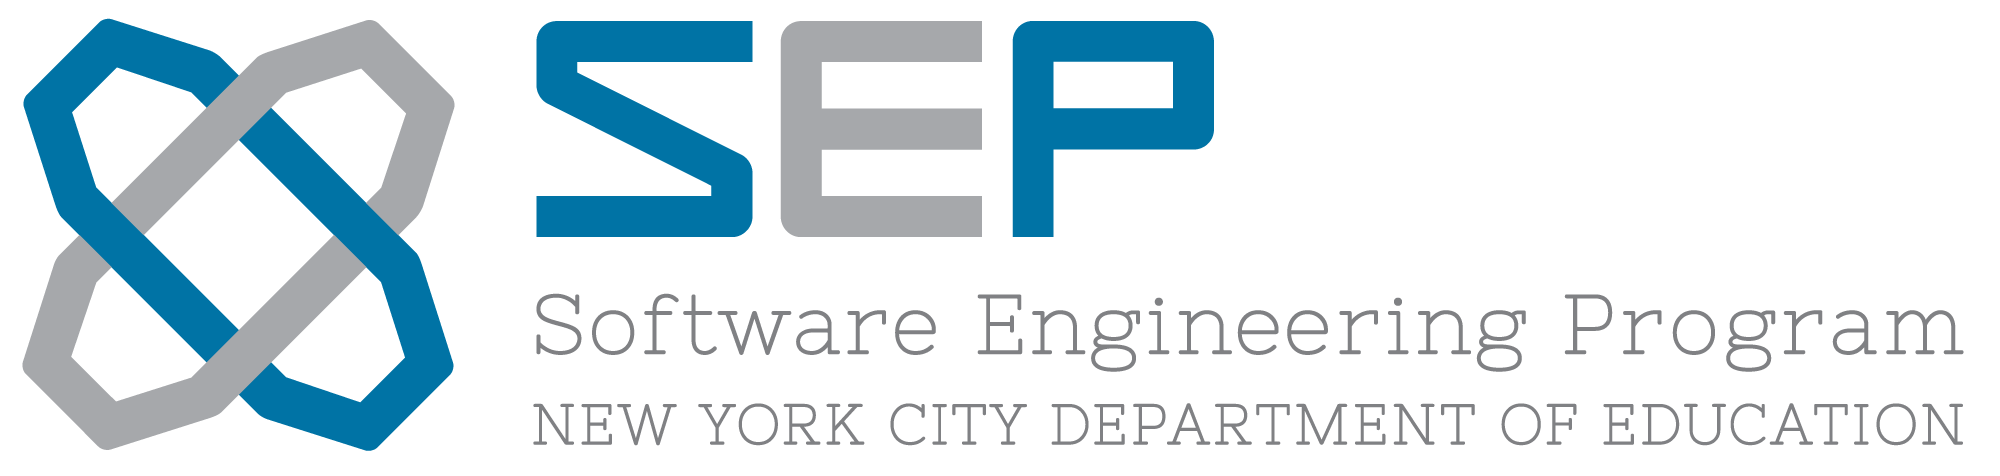 Software Engineering Program